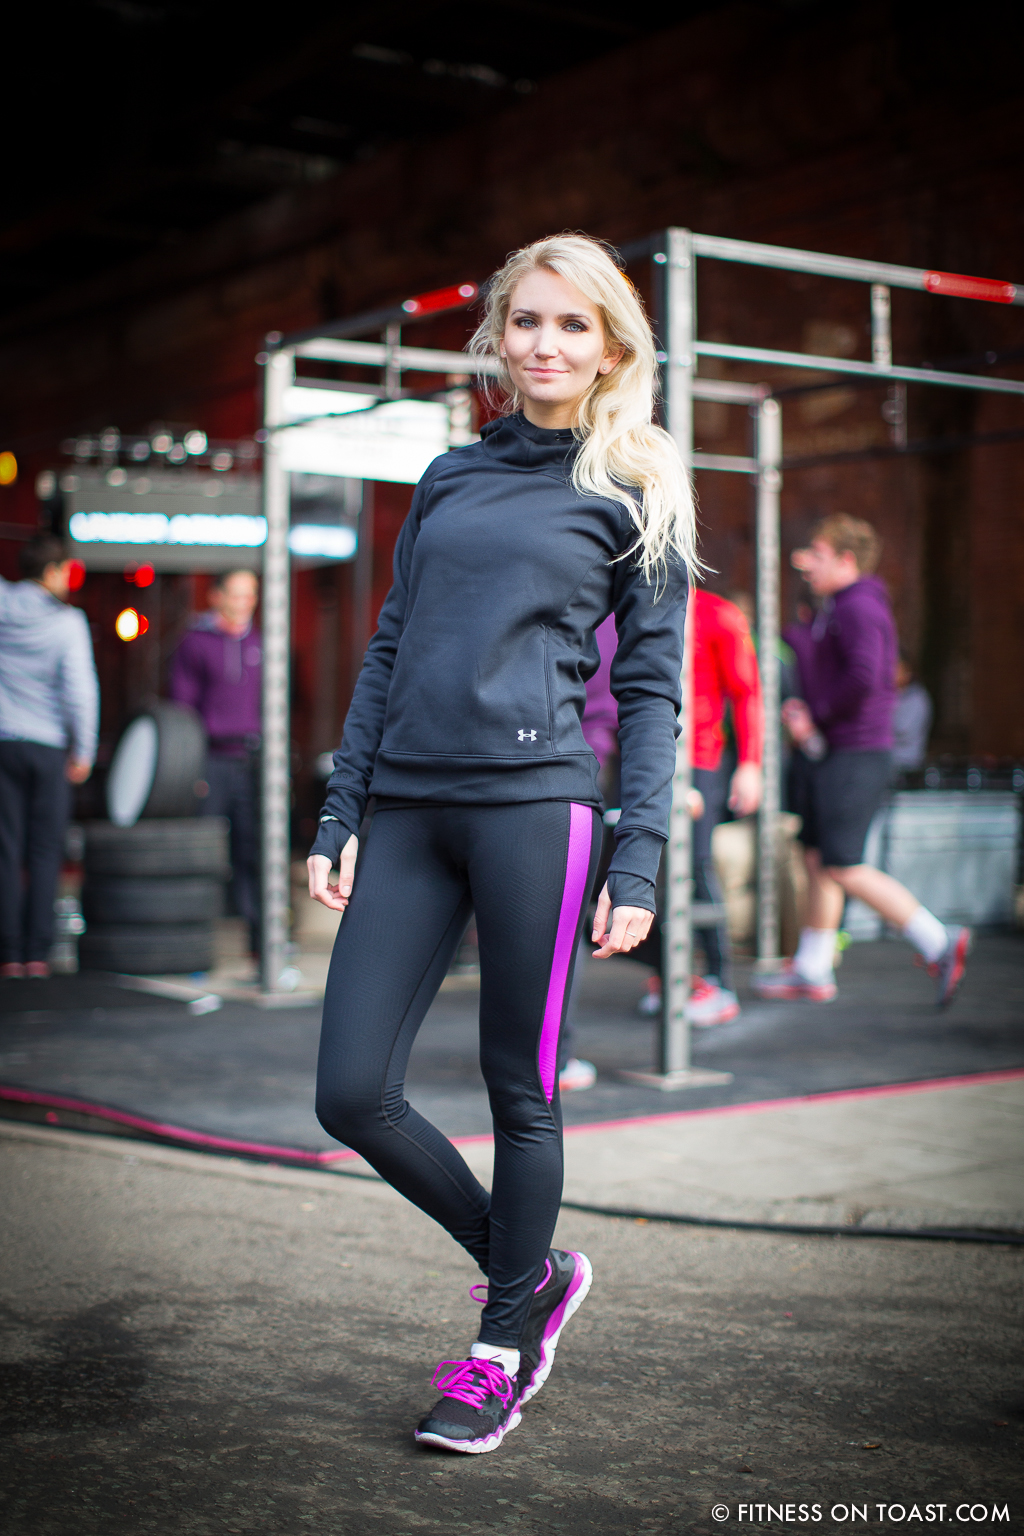 Fitness On Toast Faya Under Armour Armor Gym Southwark Bridge London Pop Up Exercise Temporary Stations Sledge Functional Compound-2